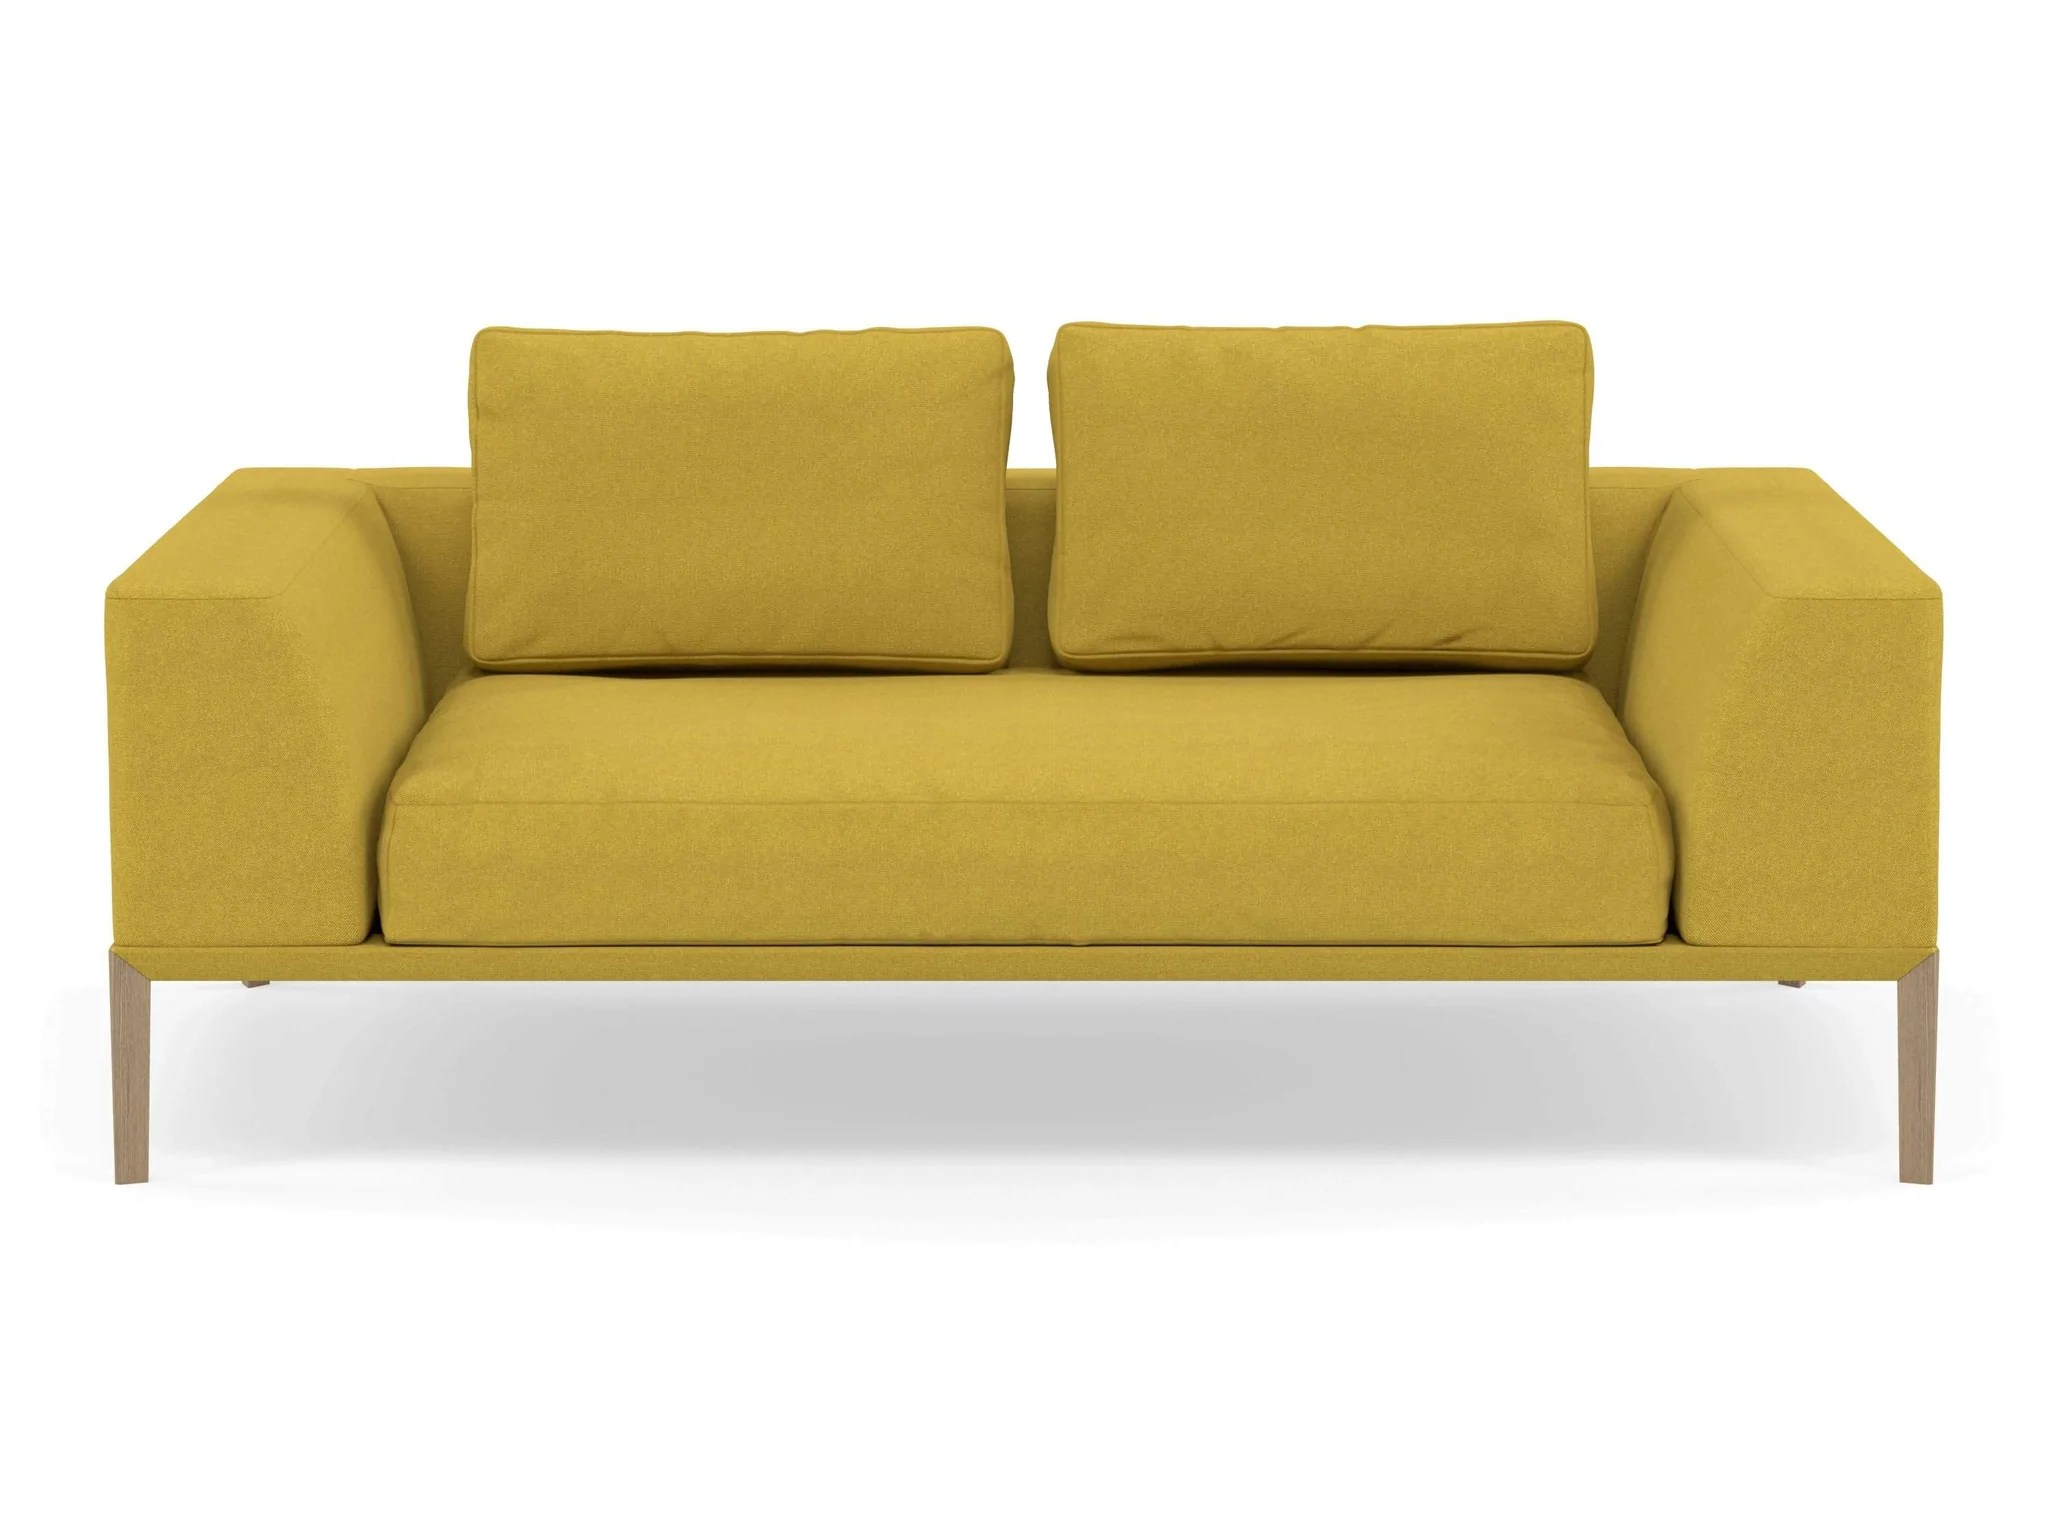 Modern 2 Seater Sofa With 2 Armrests In Vibrant Mustard Yellow Fabric Distinct Designs London Ltd